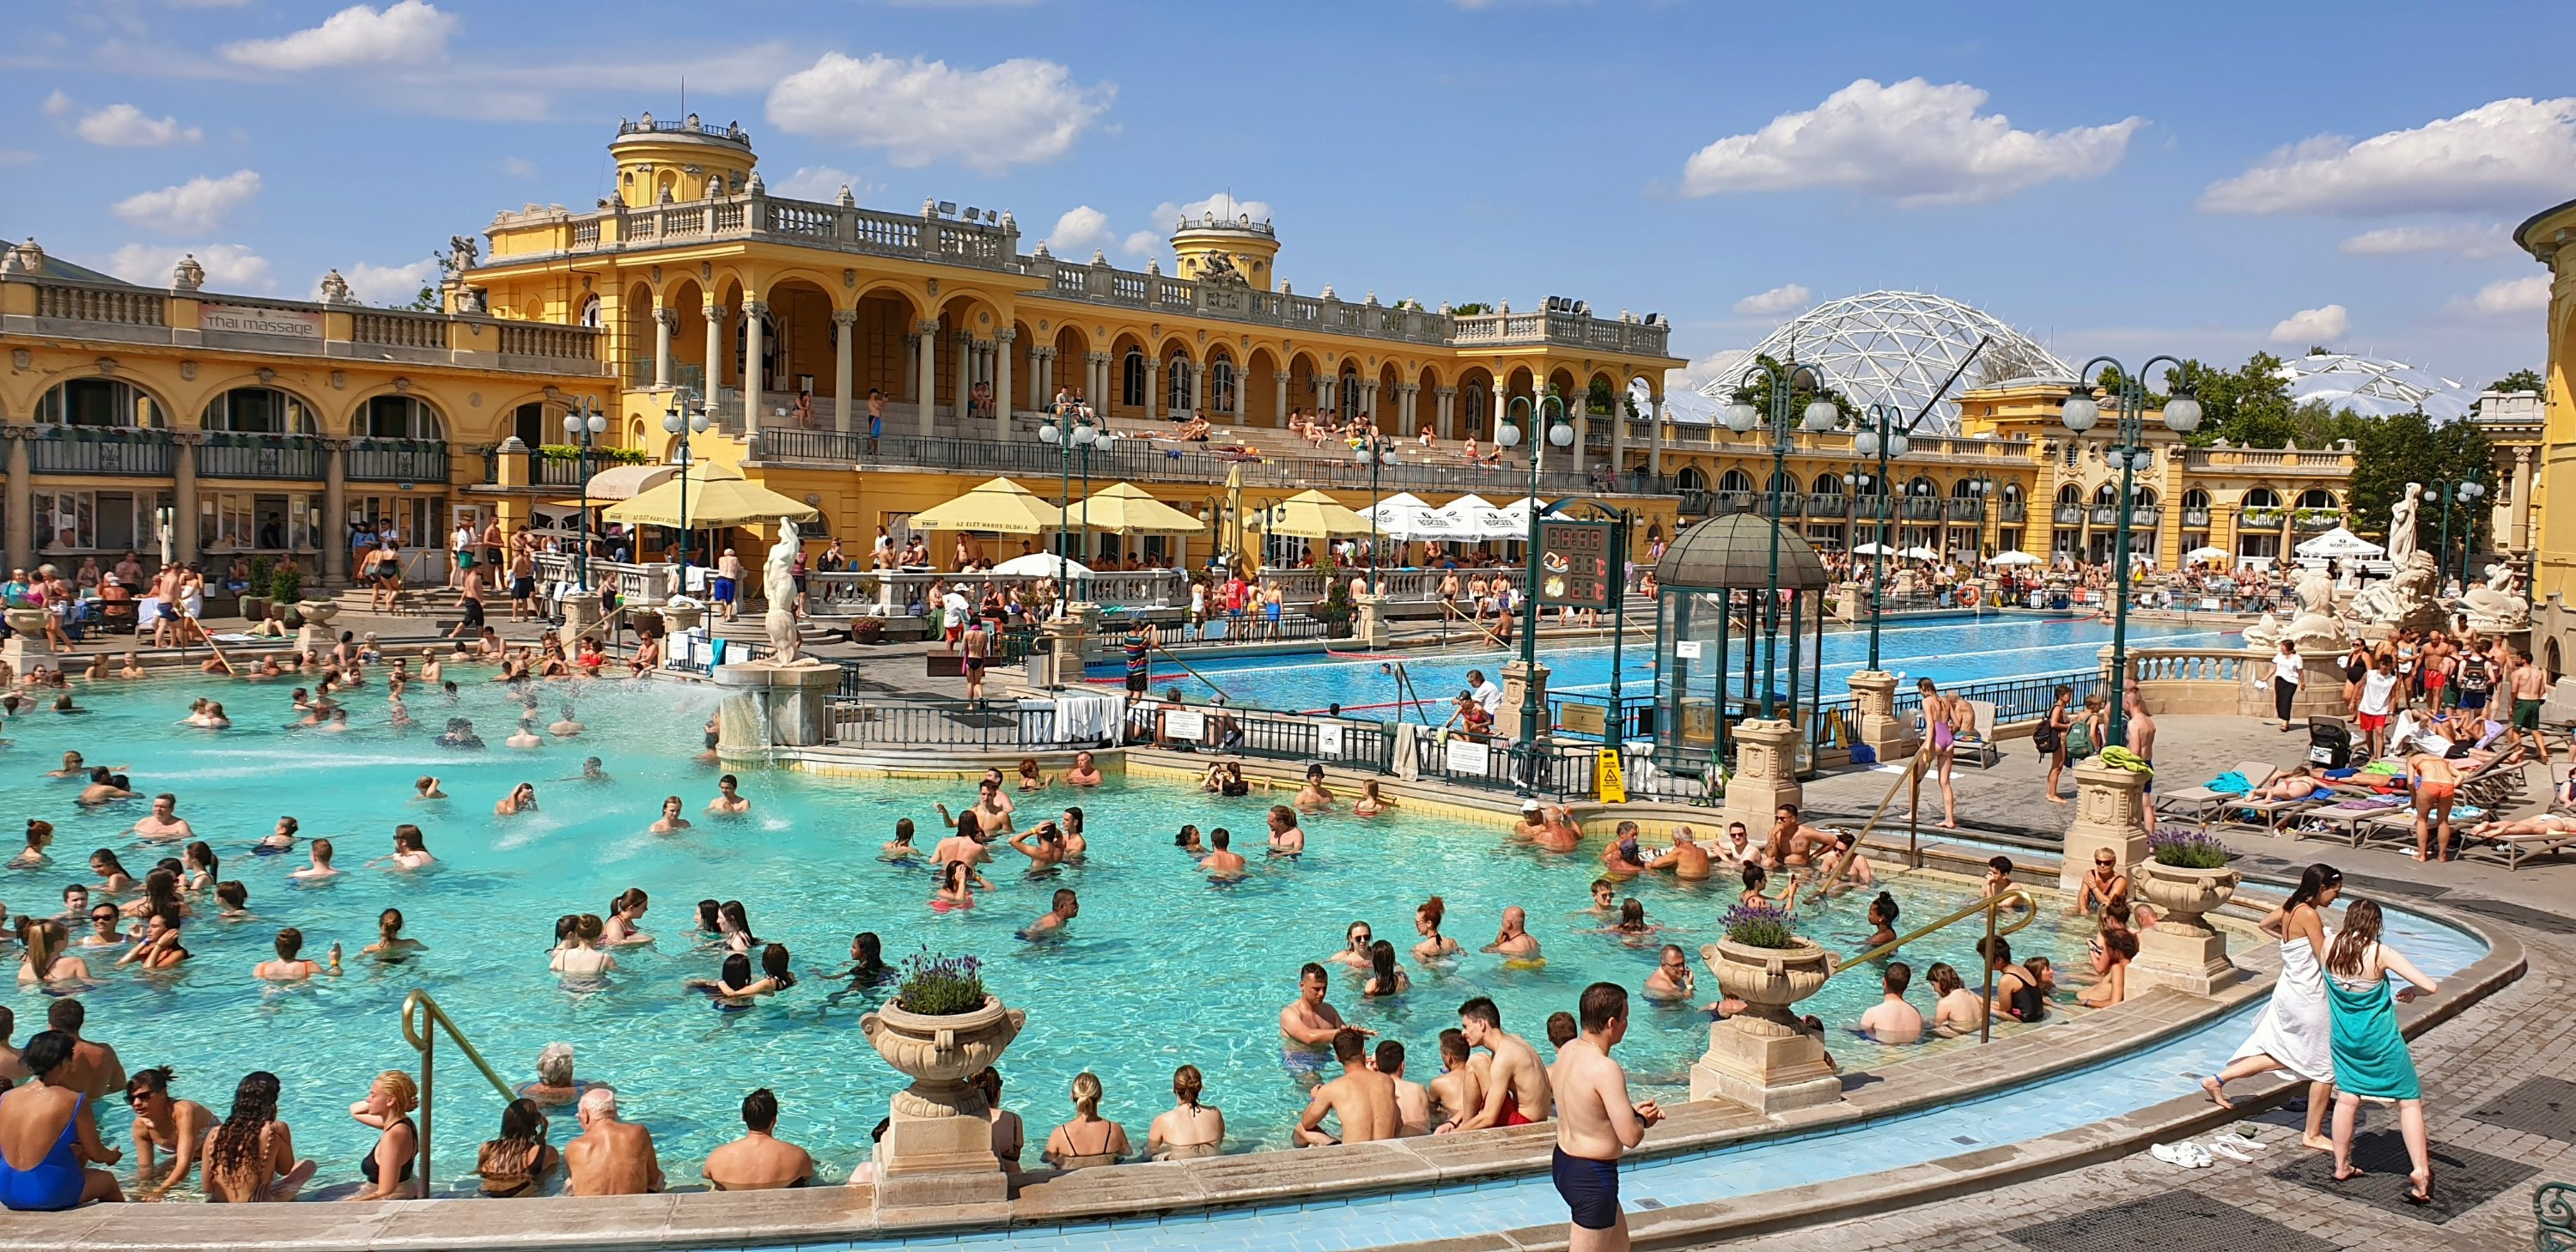 The over crowded Szechenyi baths in Budapest Hungary, with their famous yellow buildings.